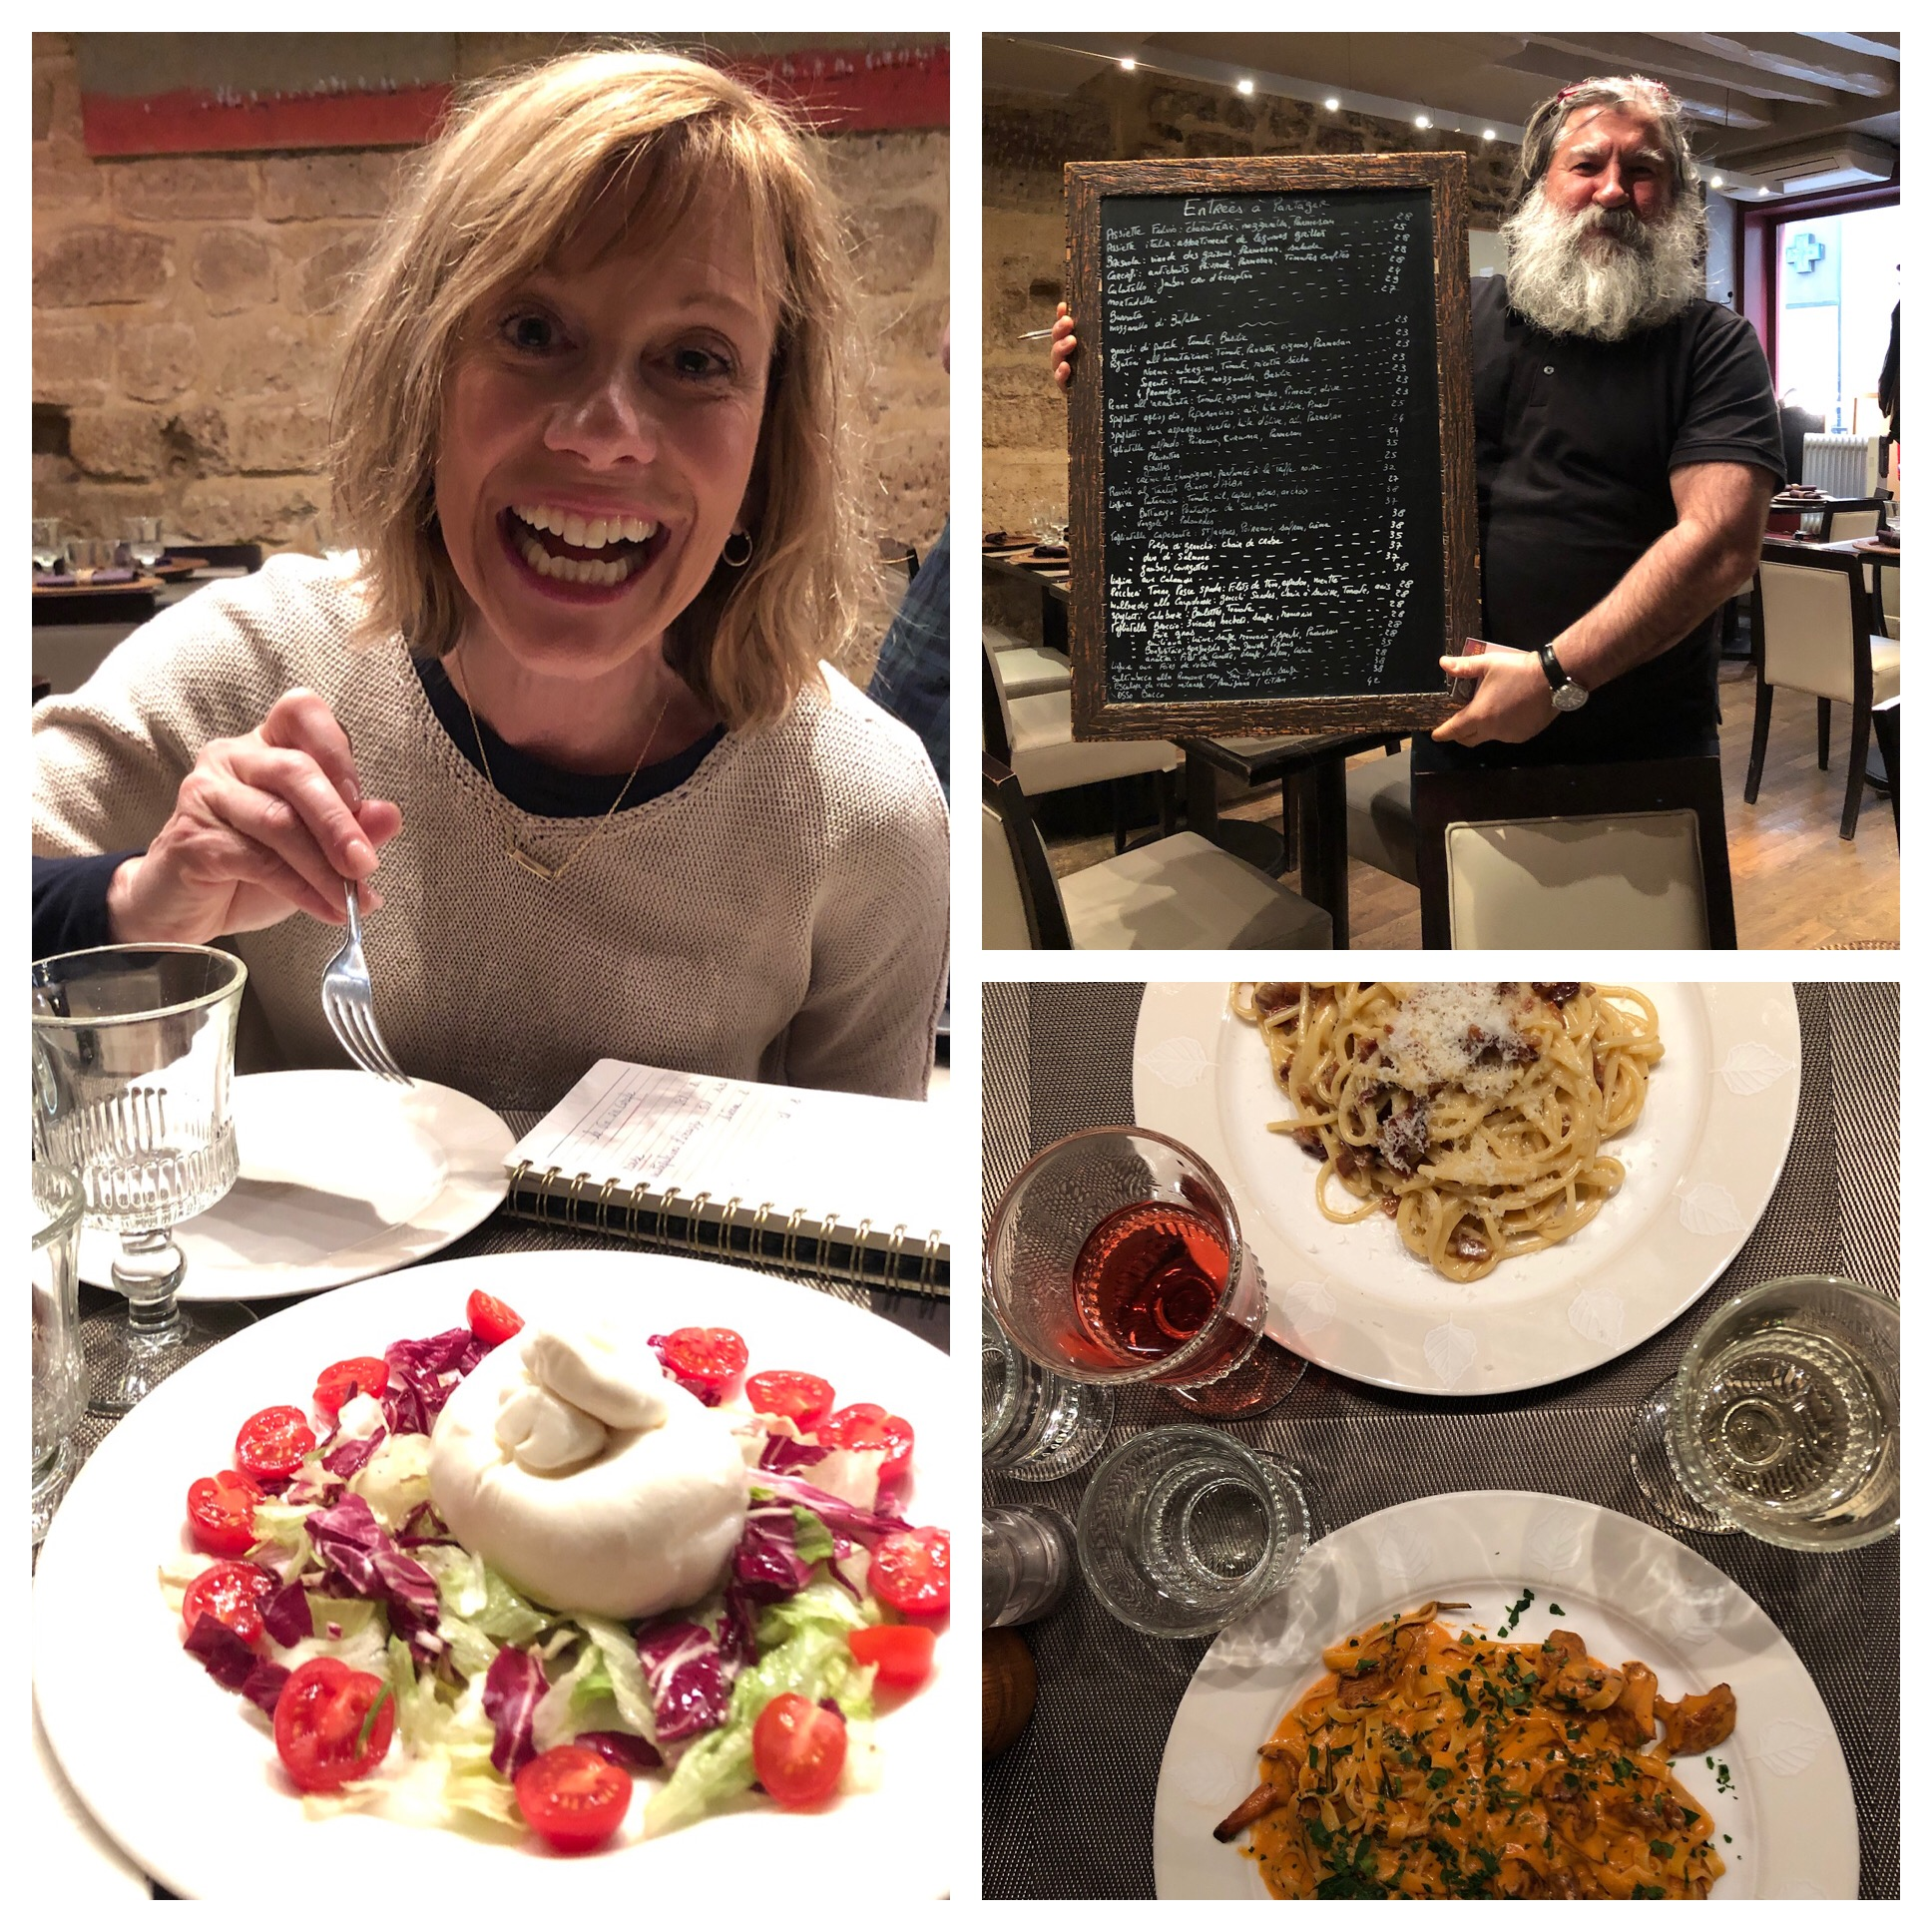 We shared the burrata appetizer and I can't remember what kind of pasta dishes we had but they were both great! And the wine list is hand written in a little notebook. I love that!